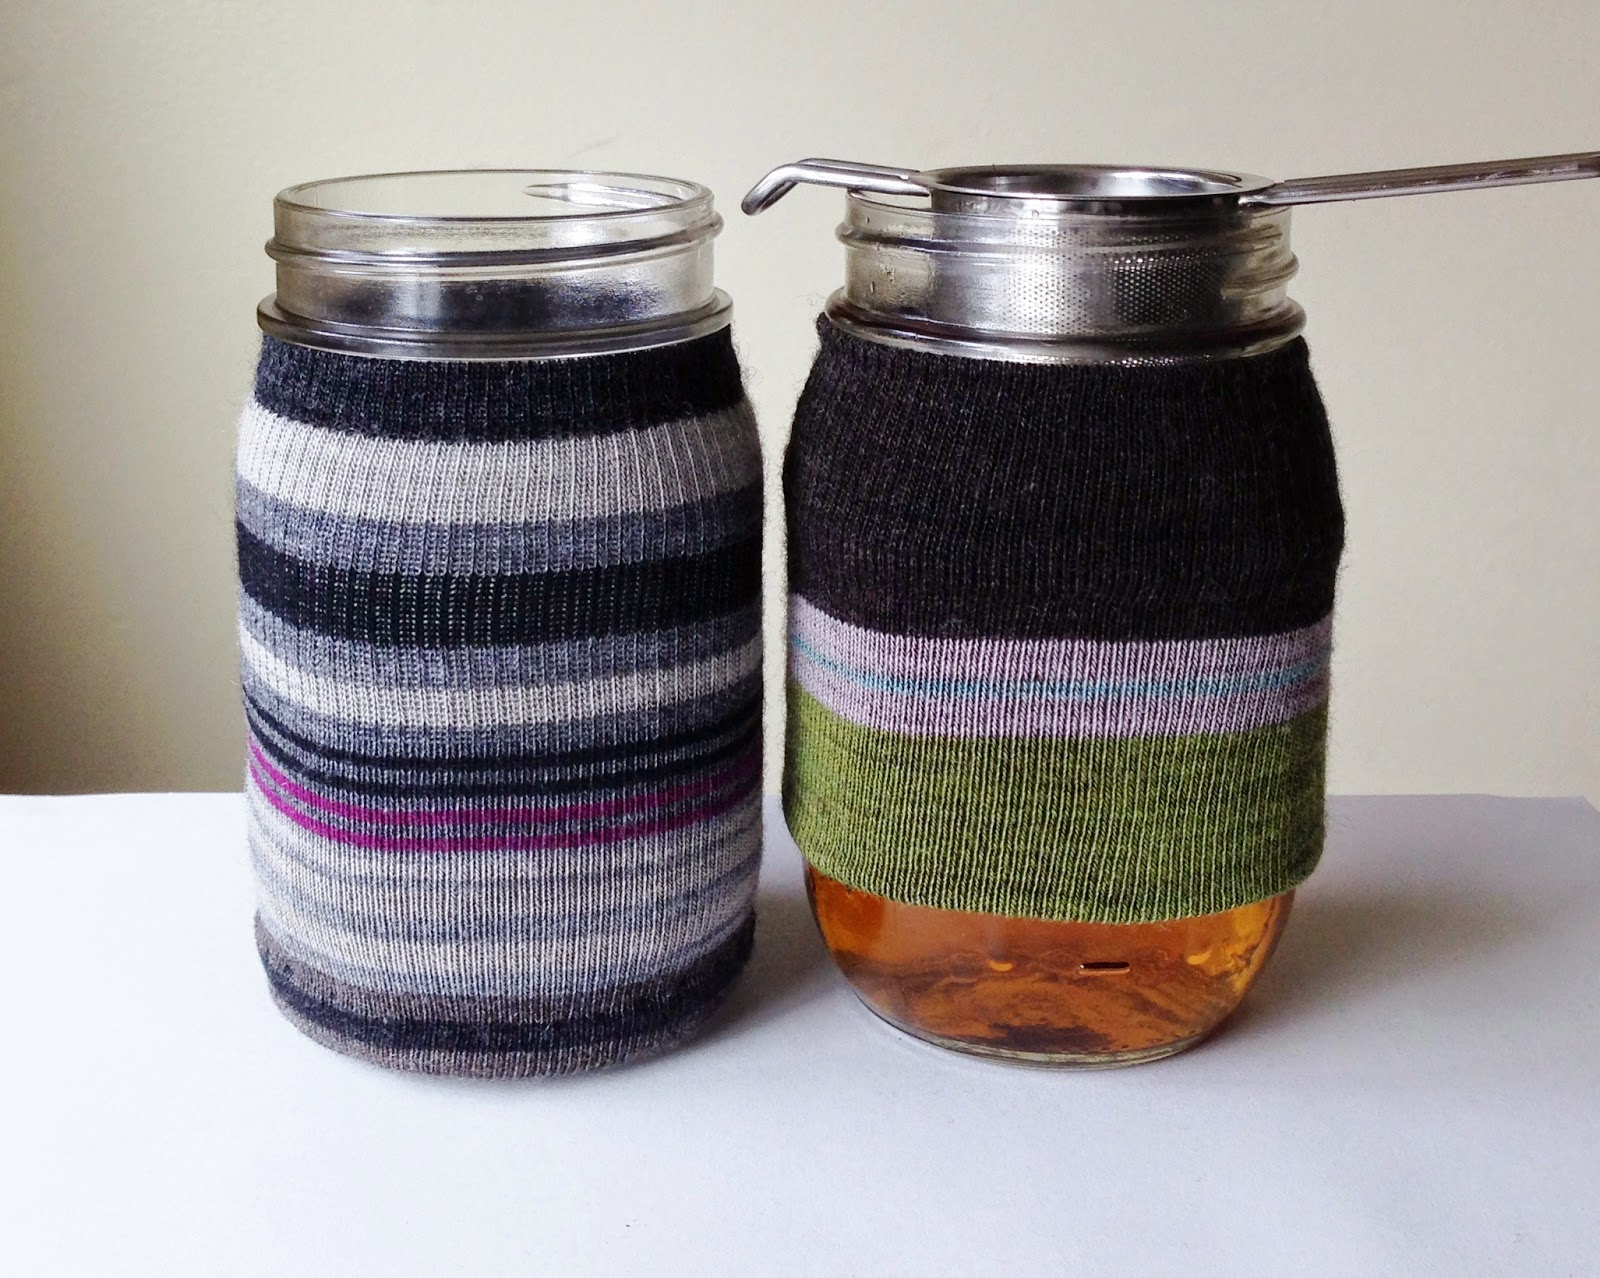 http://webloomhere.blogspot.com/2014/12/another-mason-jar-cozy-tutorial.html